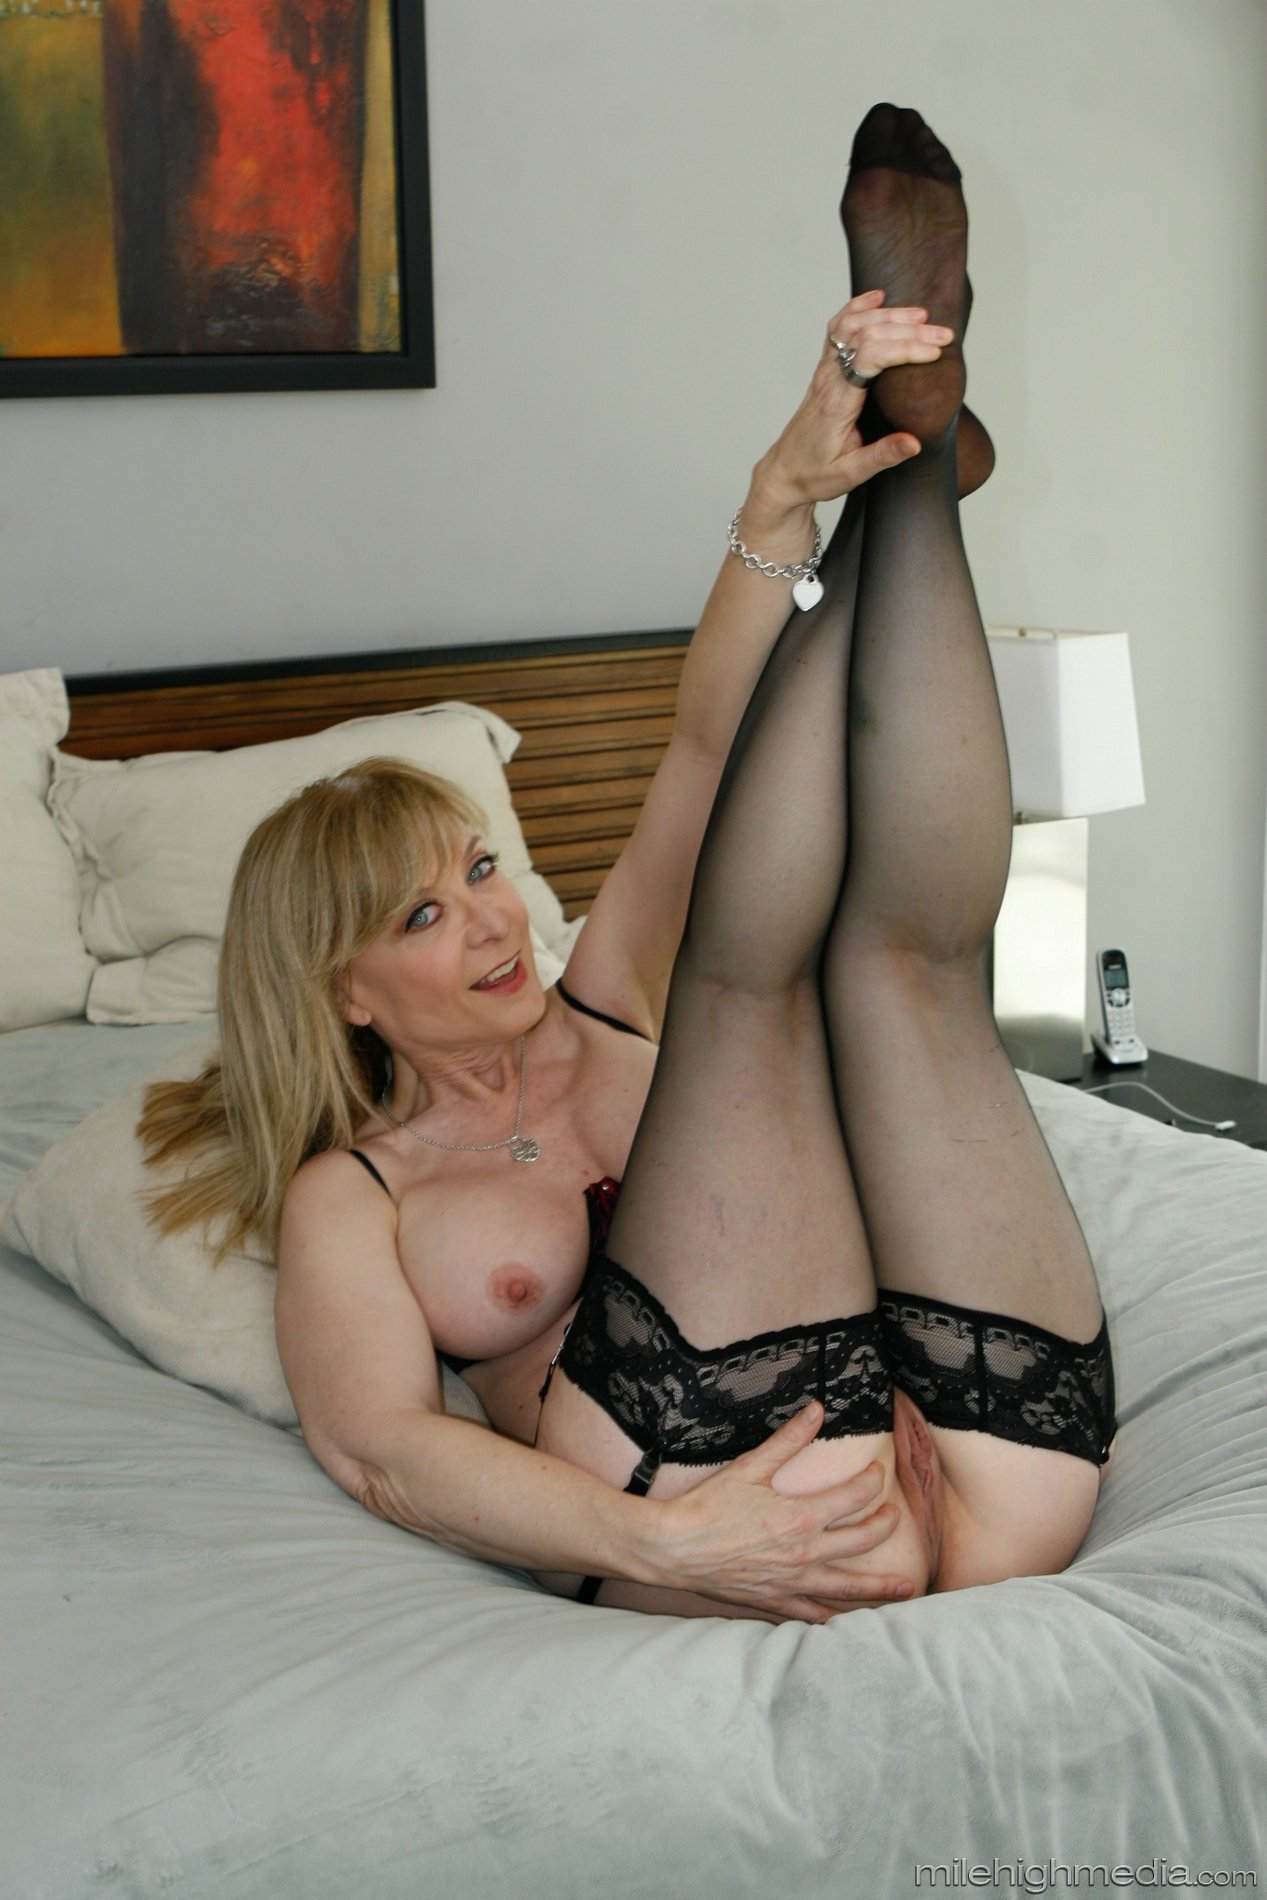 Pornstar nina hartley naked charming answer